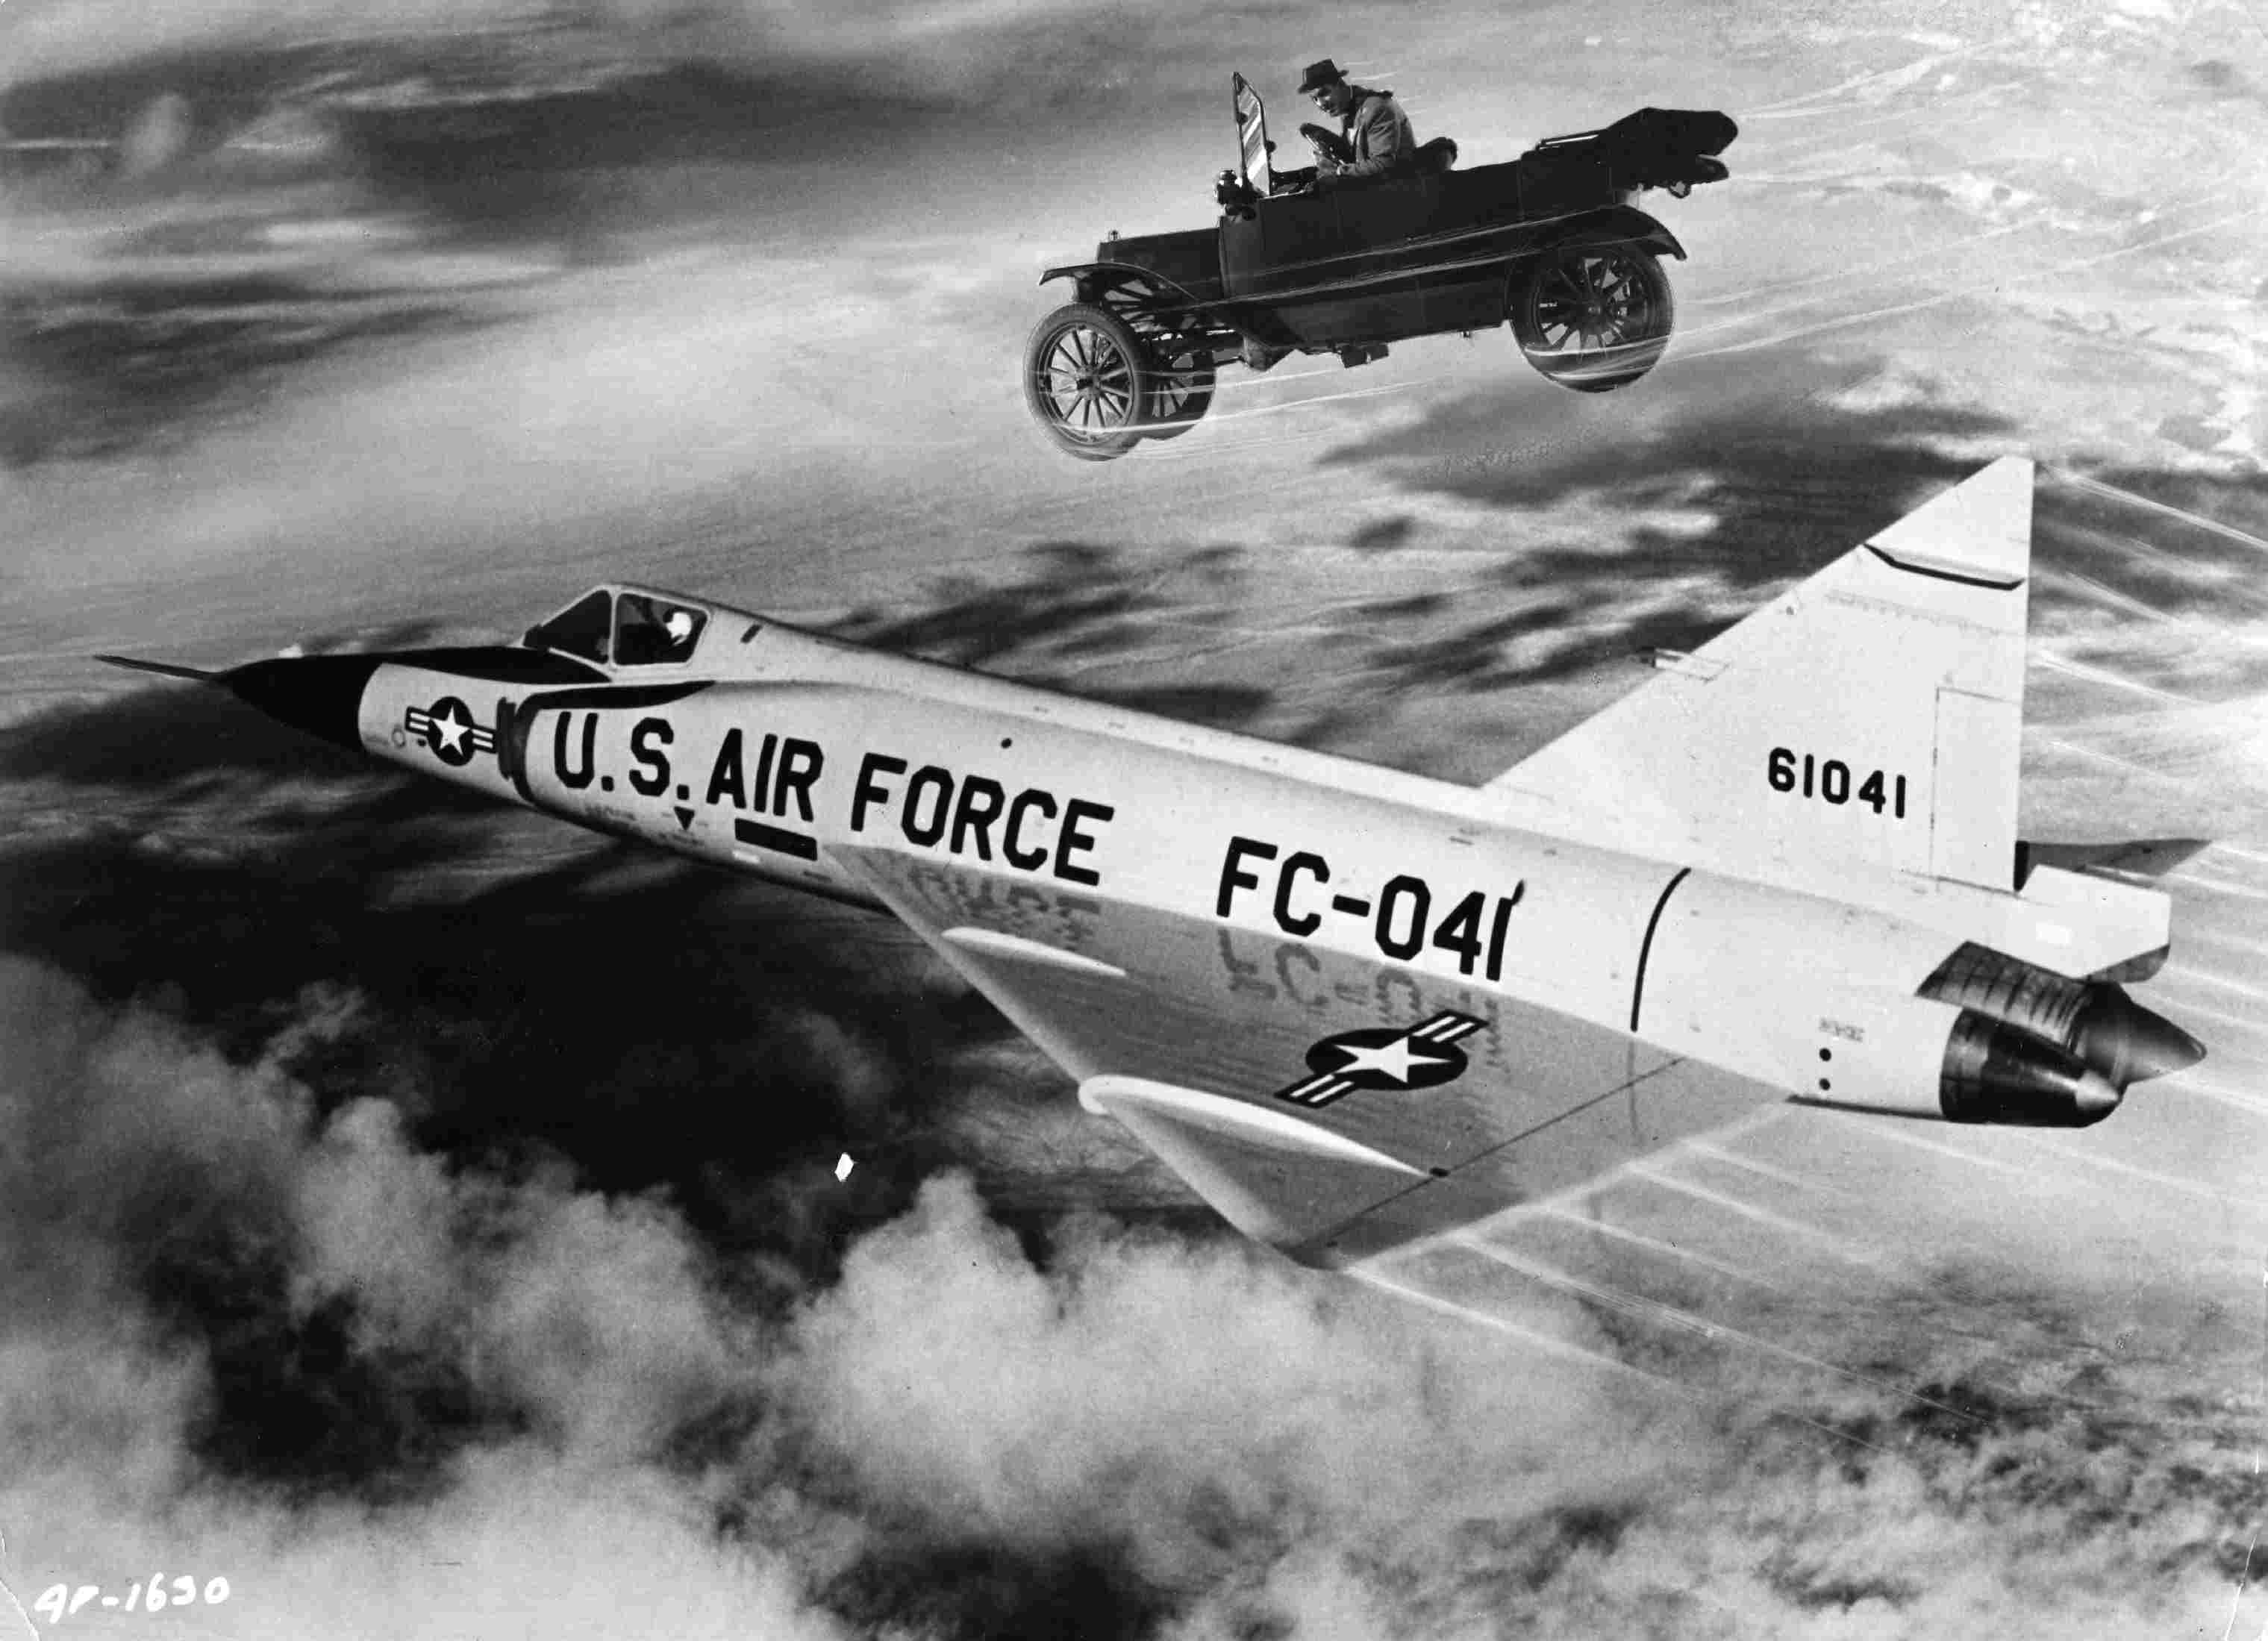 Flying Jalopy above an Air Force jet